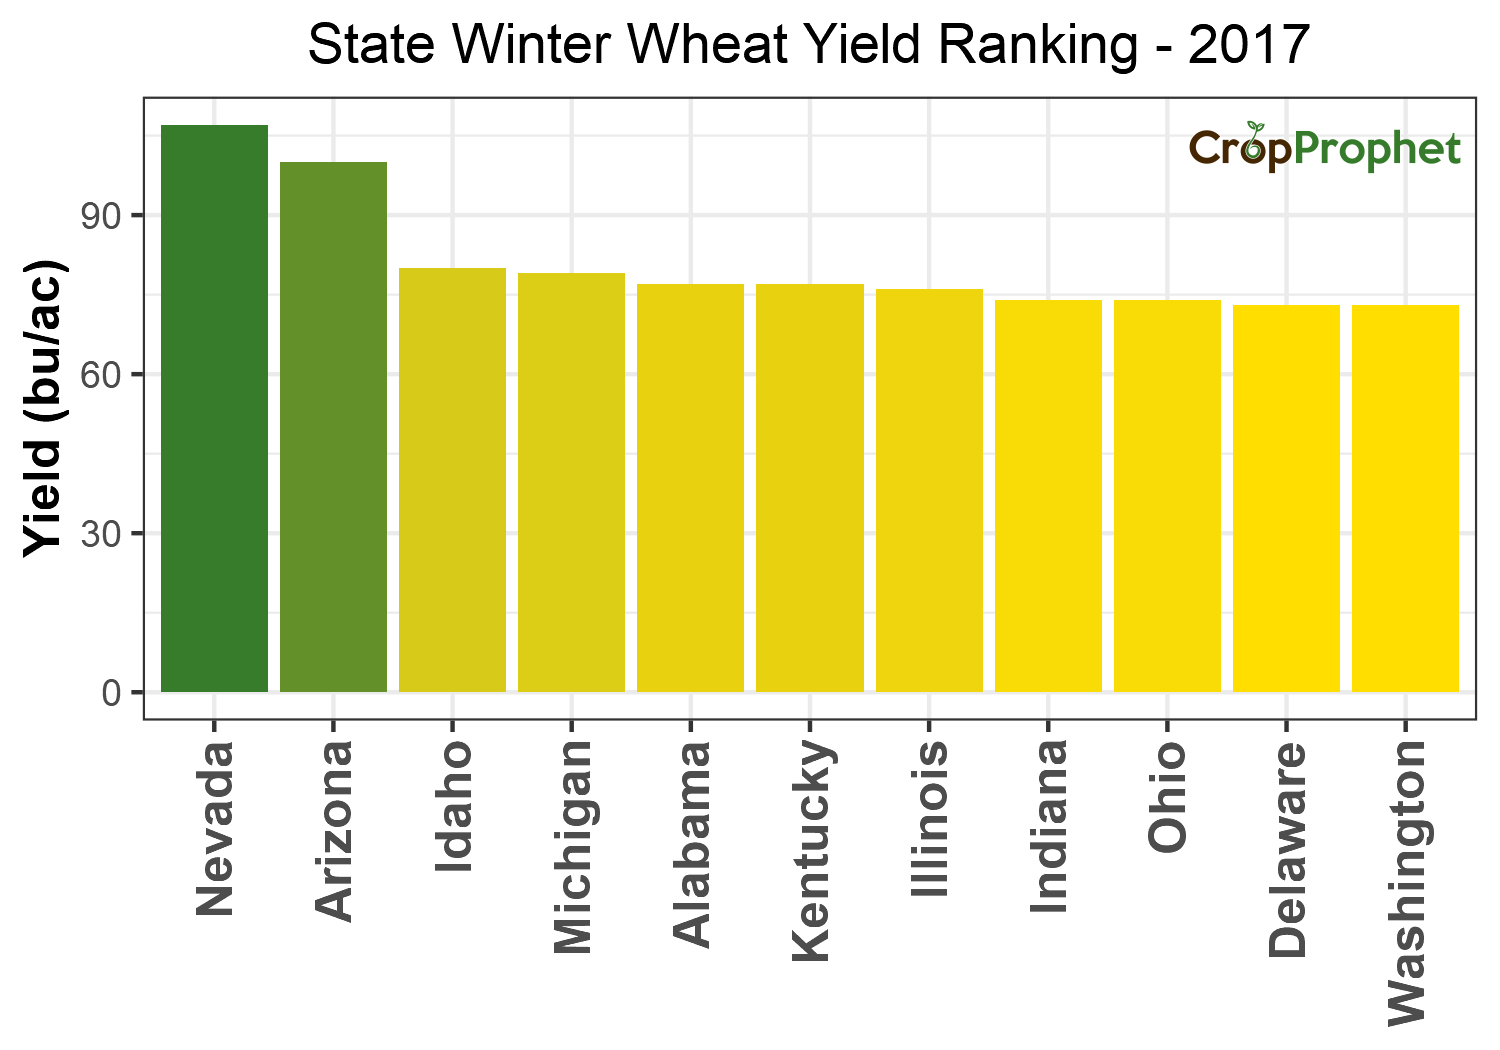 Winter wheat Production by State - 2017 Rankings